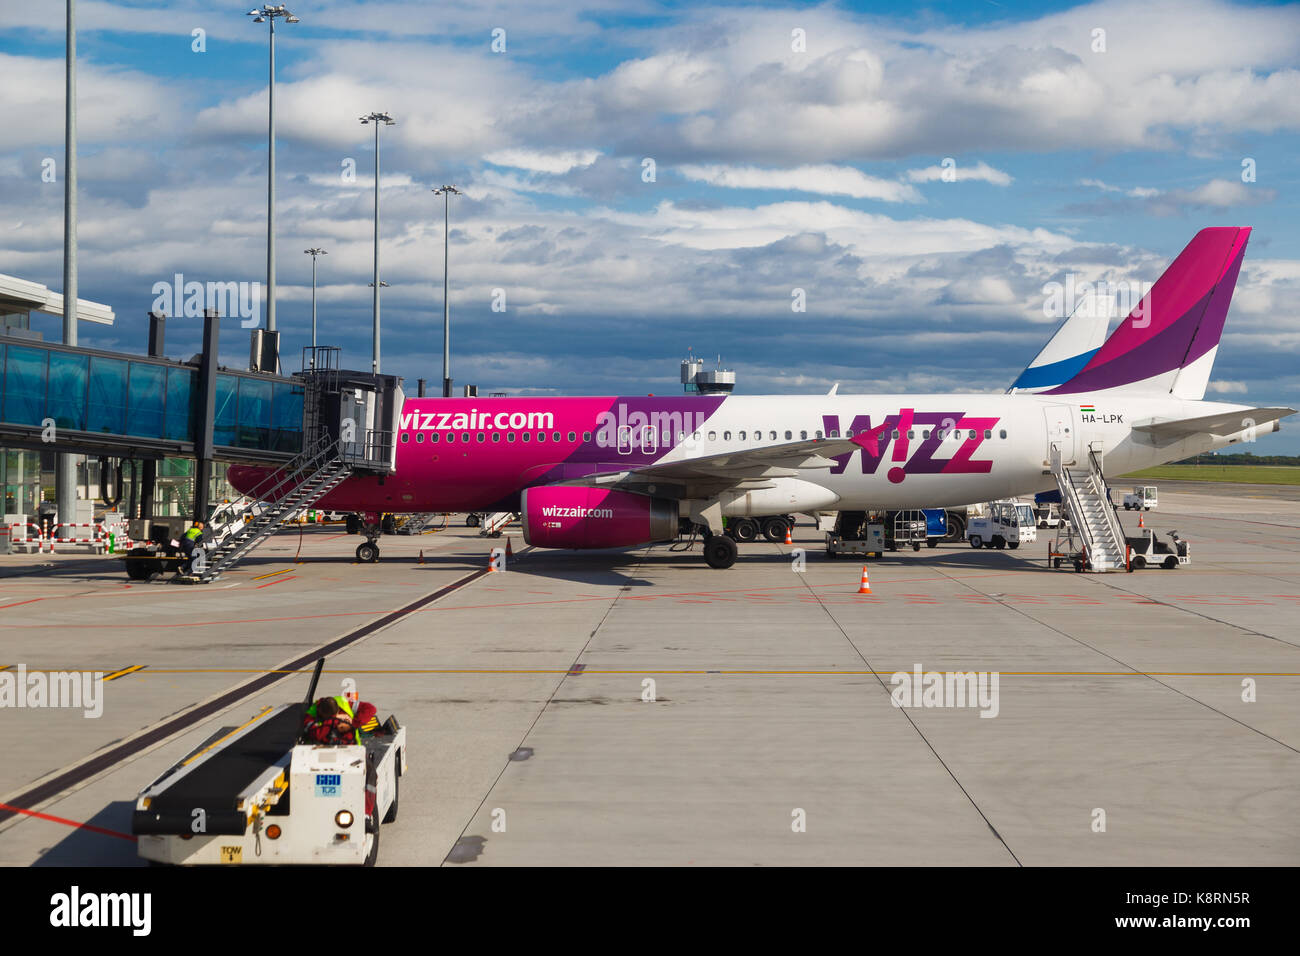 WARSAW, POLAND - SEPTEMBER 9, 2017: low cost airline plane Wizzair on the airstrip at Chopin International Airport - Stock Image